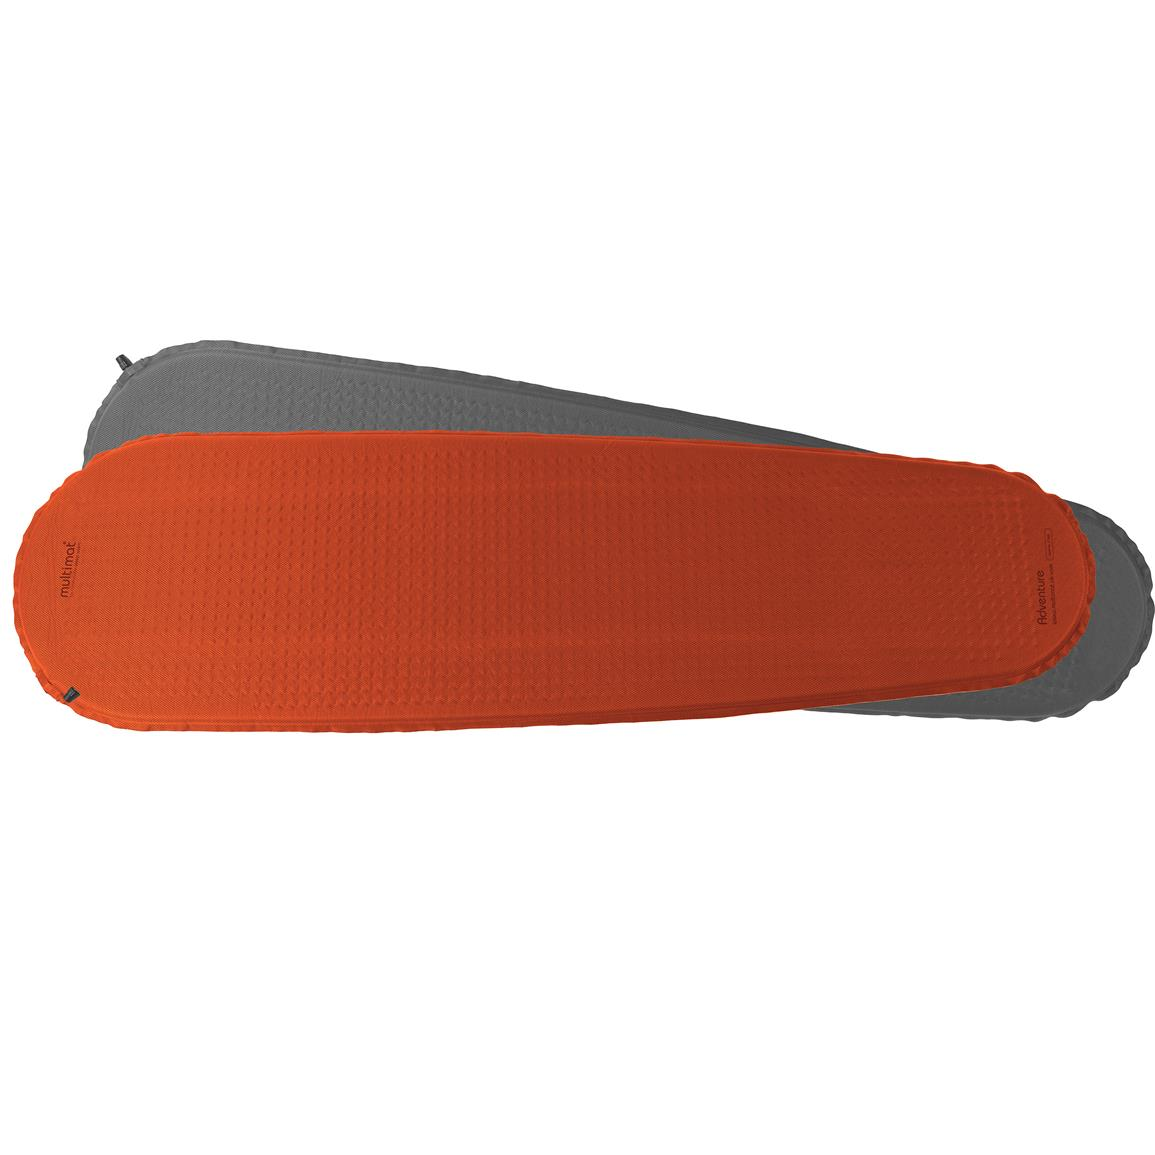 Multimat Adventure Mat Sleeping Pad